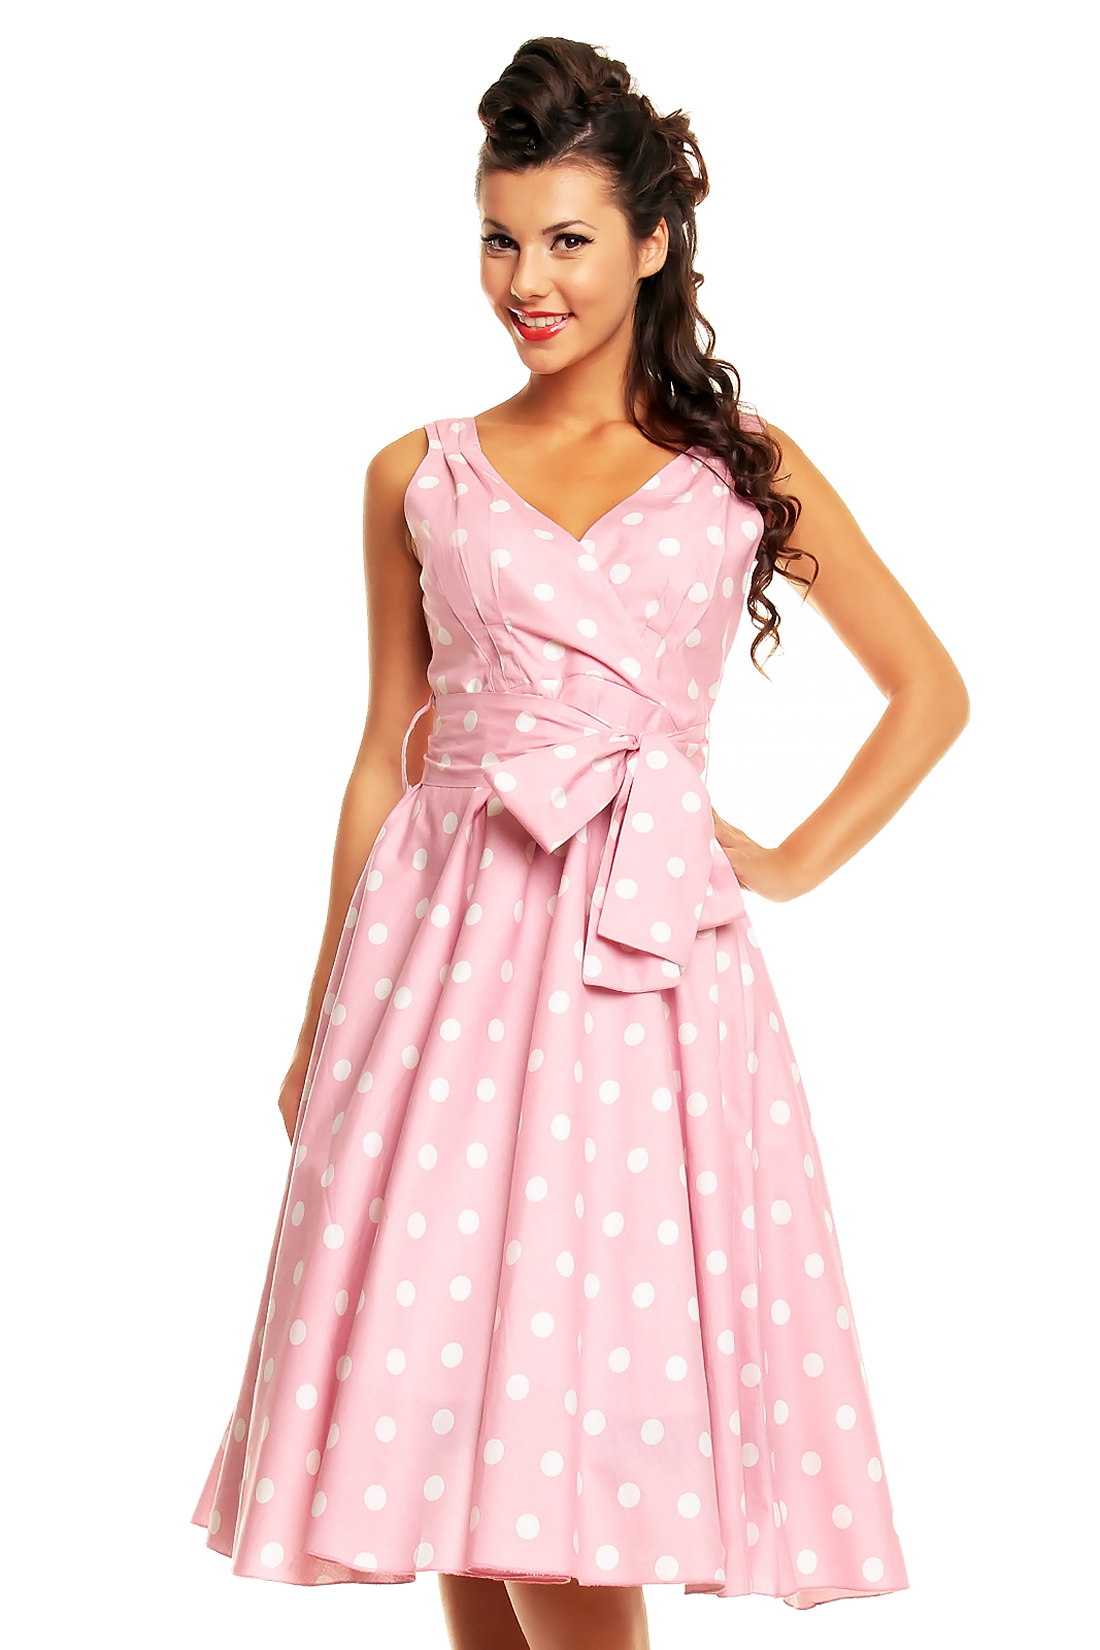 Ladies Marilyn 1950\'s Rockabilly Plus Size Polka Dot Retro ...